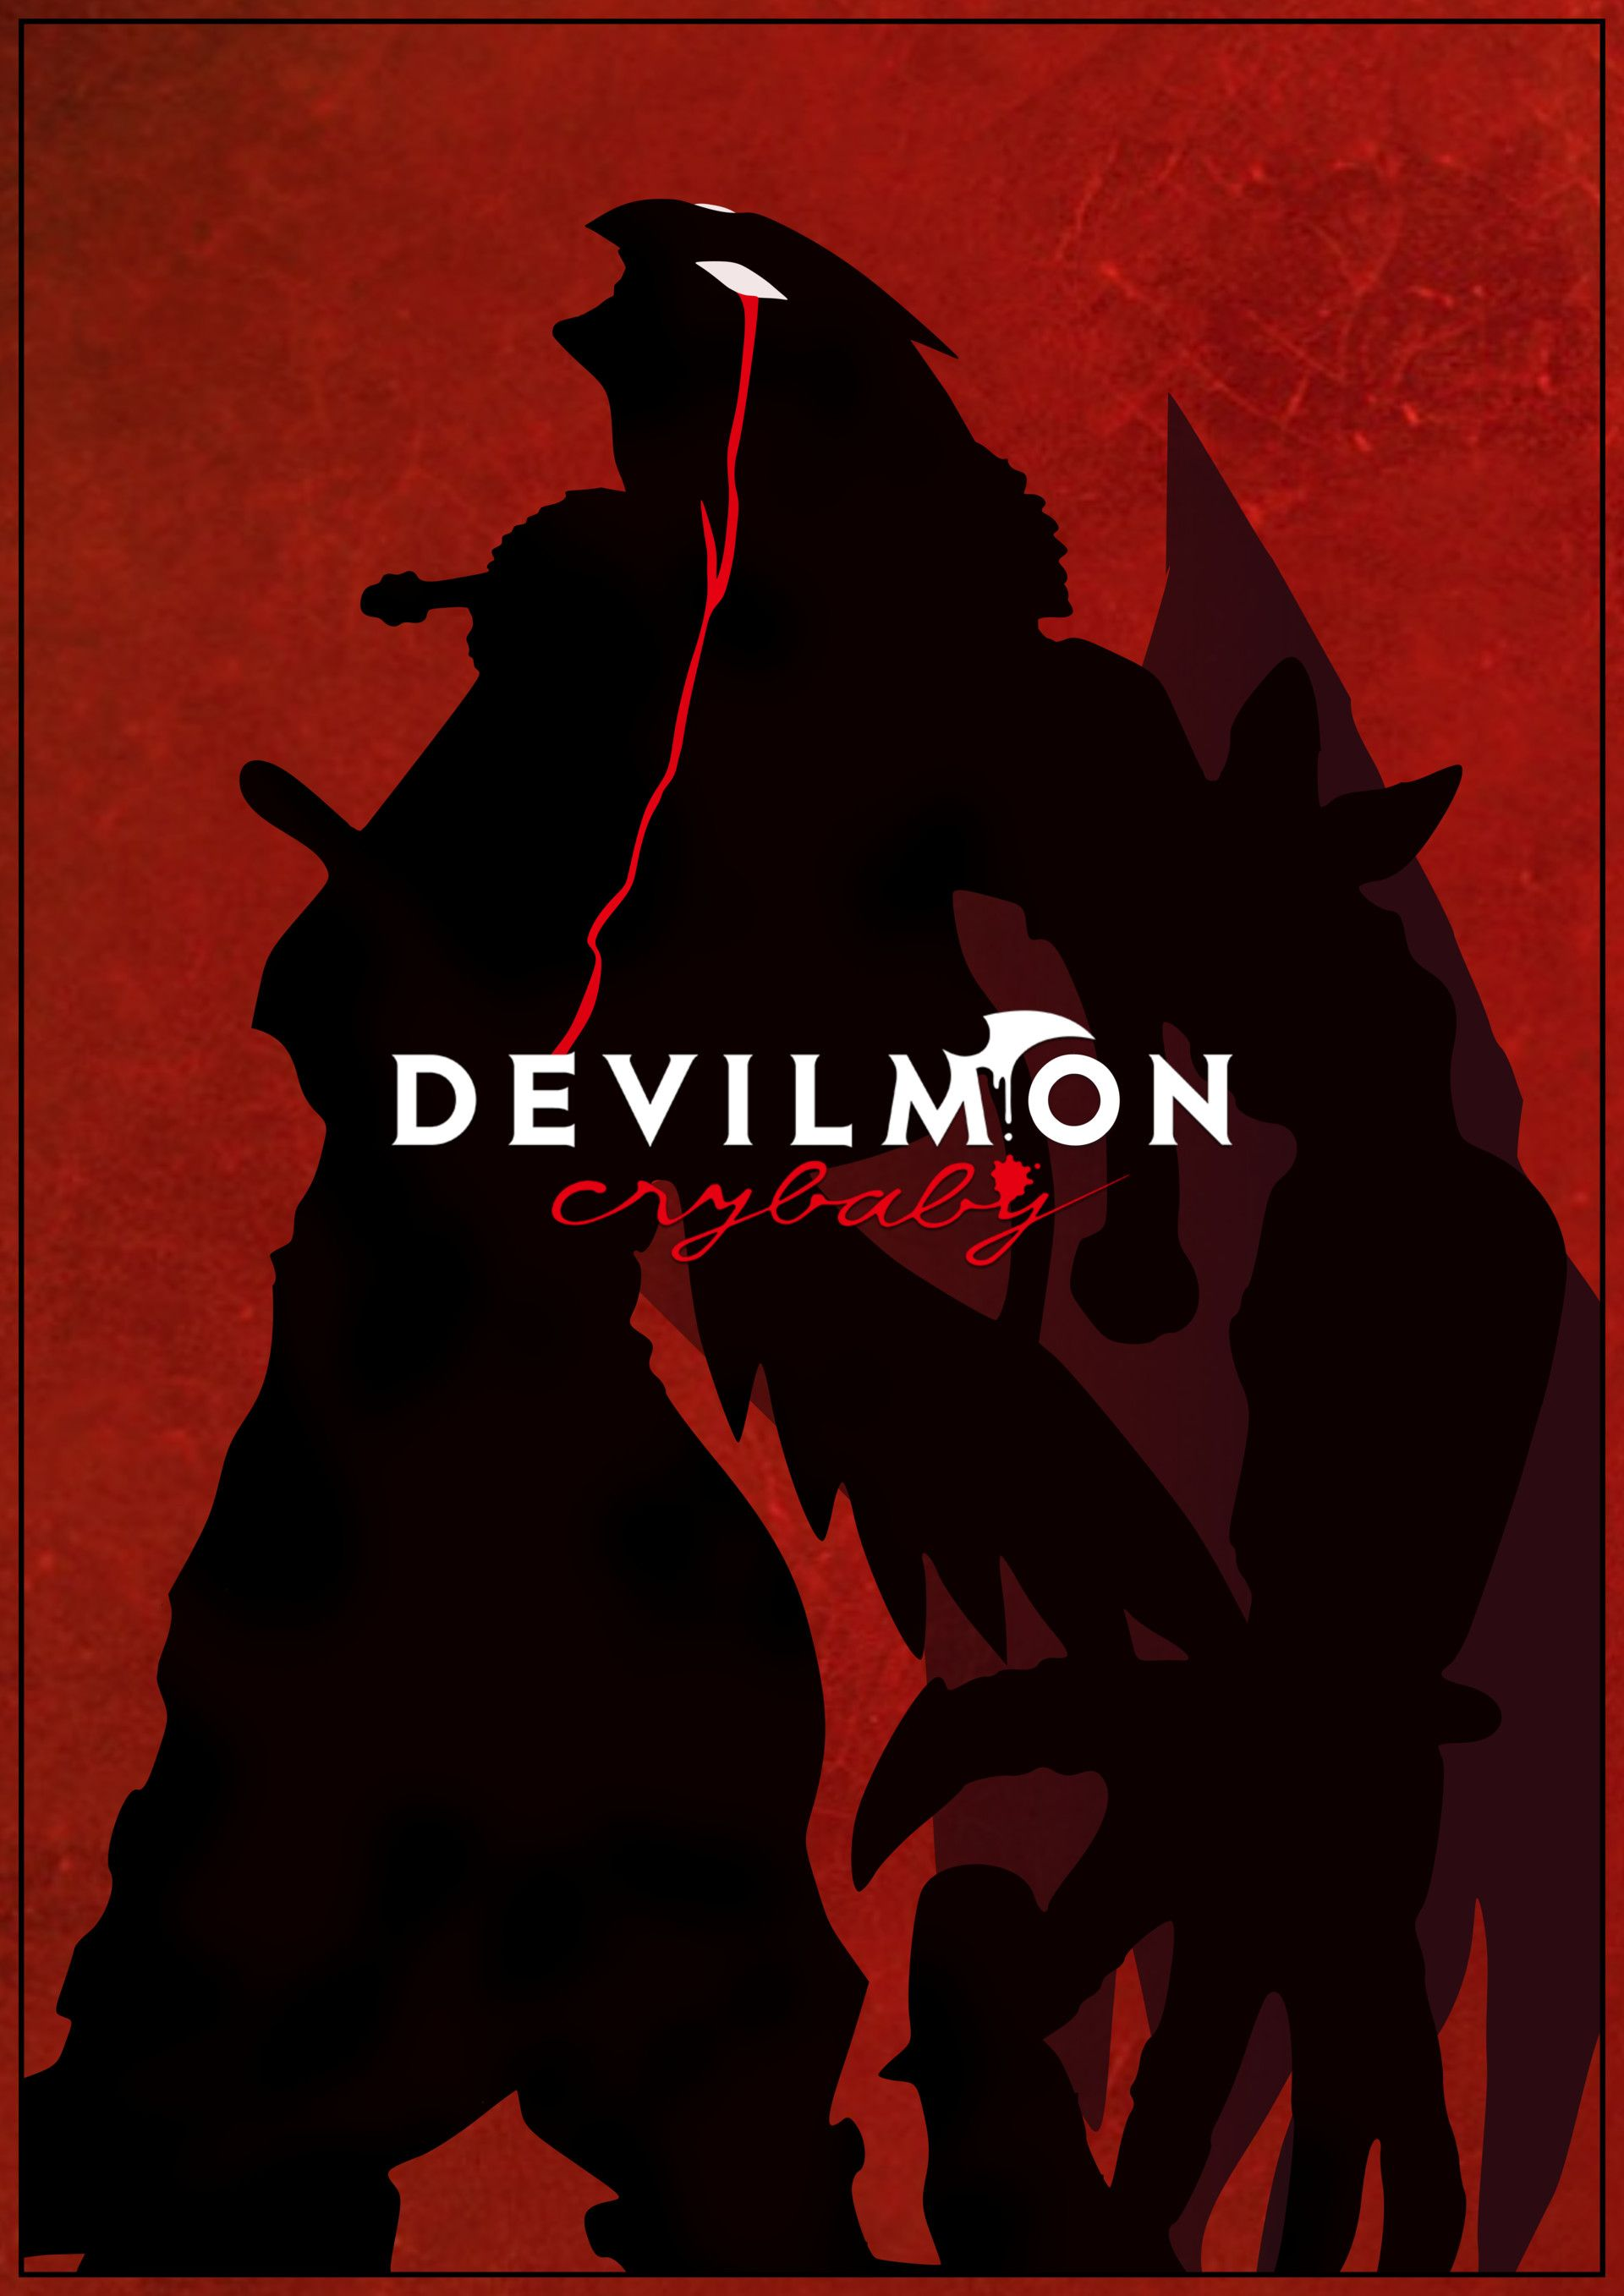 Devilman Crybaby Wallpapers Top Free Devilman Crybaby Backgrounds Wallpaperaccess